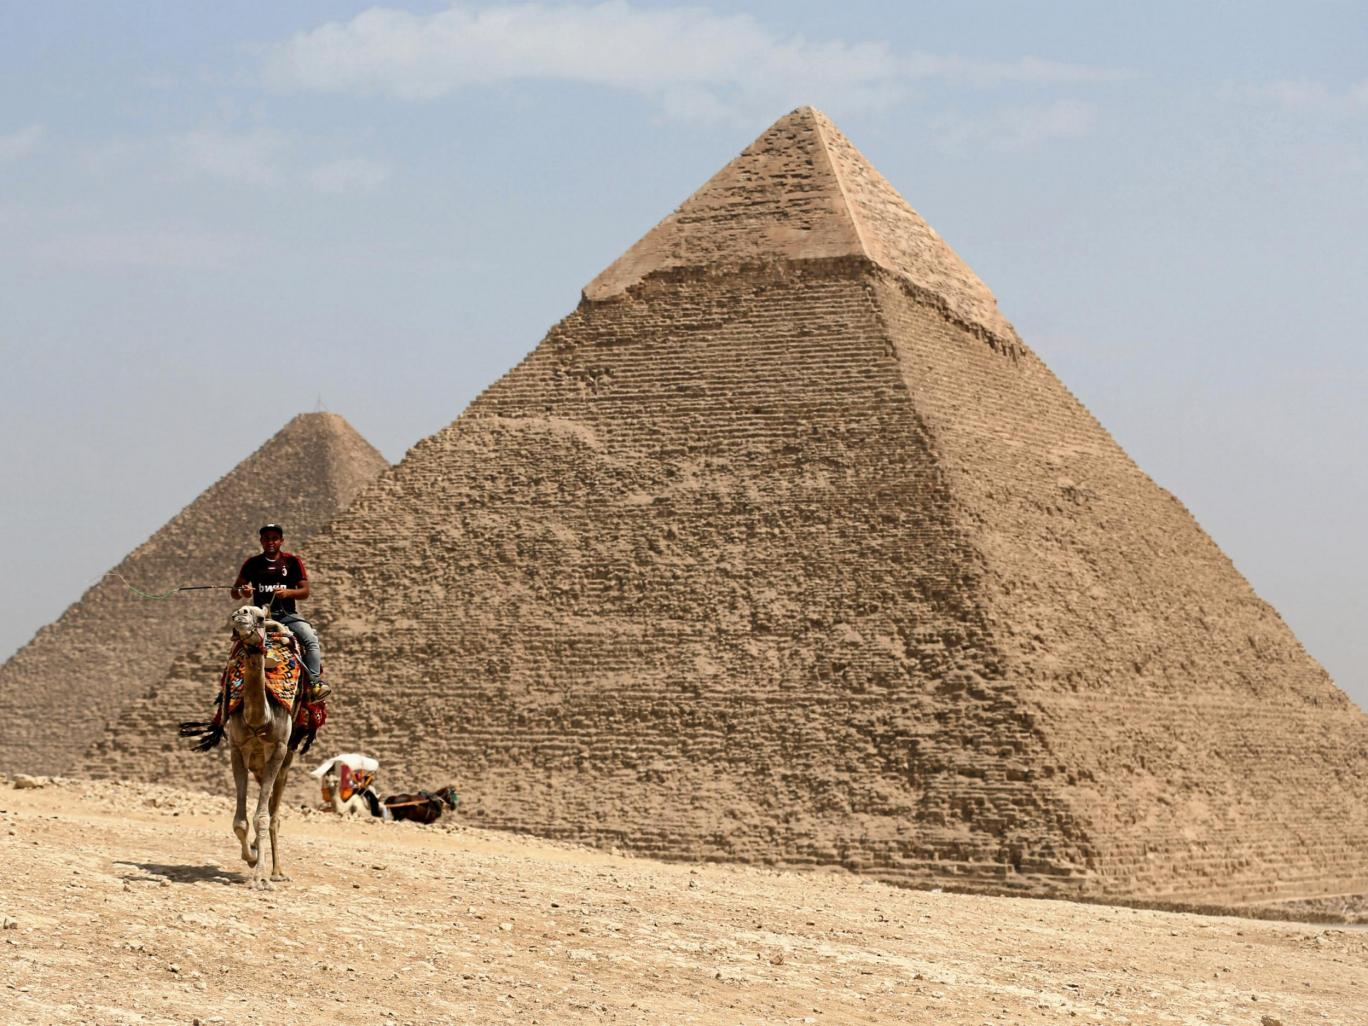 the great giza pyramids on the outskirts of cairo photo reuters